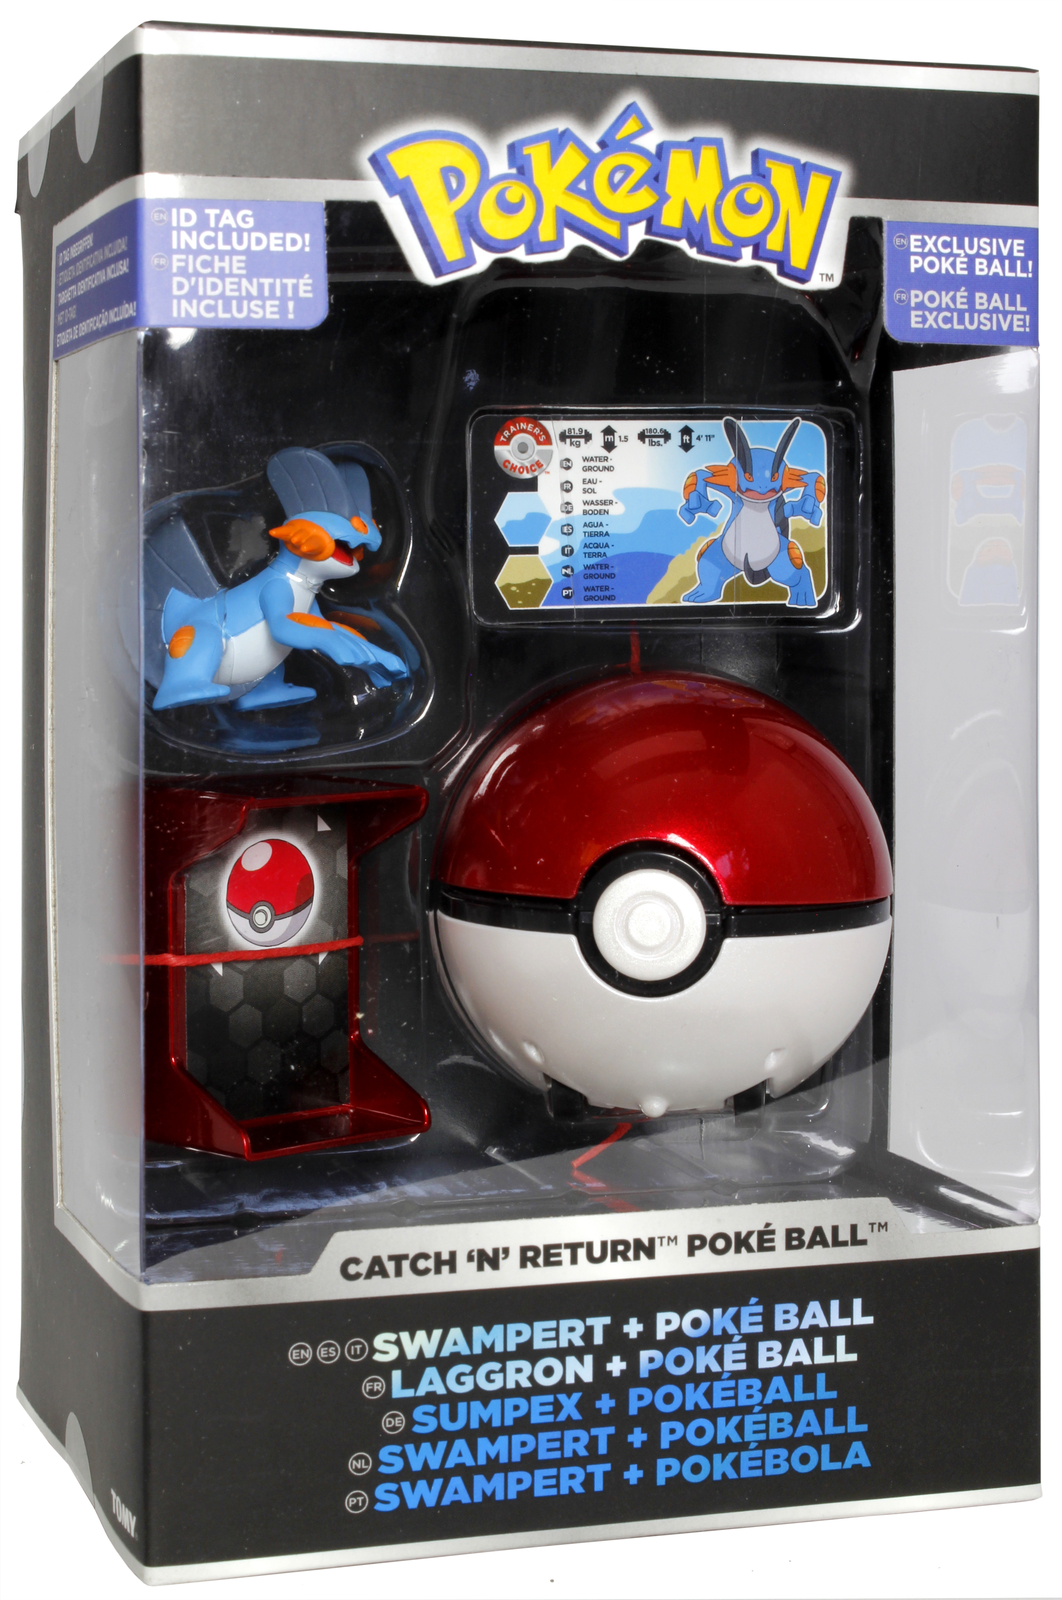 Pokemon: Pokémon Catch 'n Return - Swampert Poké Ball image